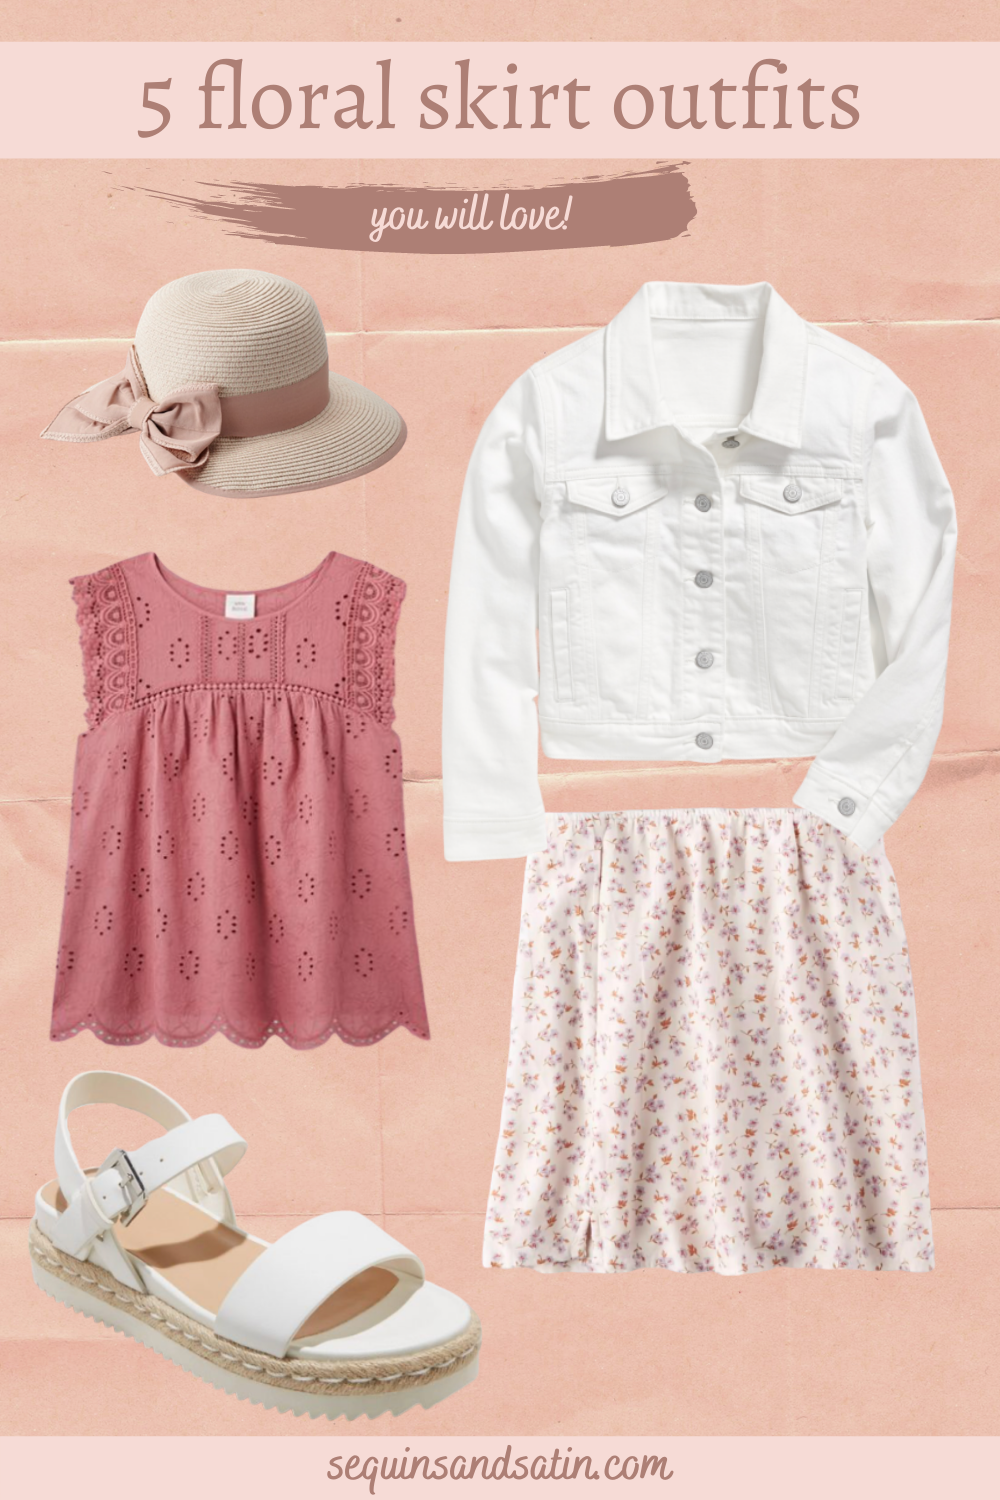 Hey there girlie! In this post I will be sharing 5 easy and cute skirt outfits styled with a casual skirt! These looks all included a floral skirt and are perfect for summer or spring fashion! This post can also help you to find out how to style skirts if you need a little help! I will be including a few of the best pink floral skirts as well that are all very affordable. #skirtoutfit #womensfashion #style #girlyfashion #springfashion #summerfashion #skirt